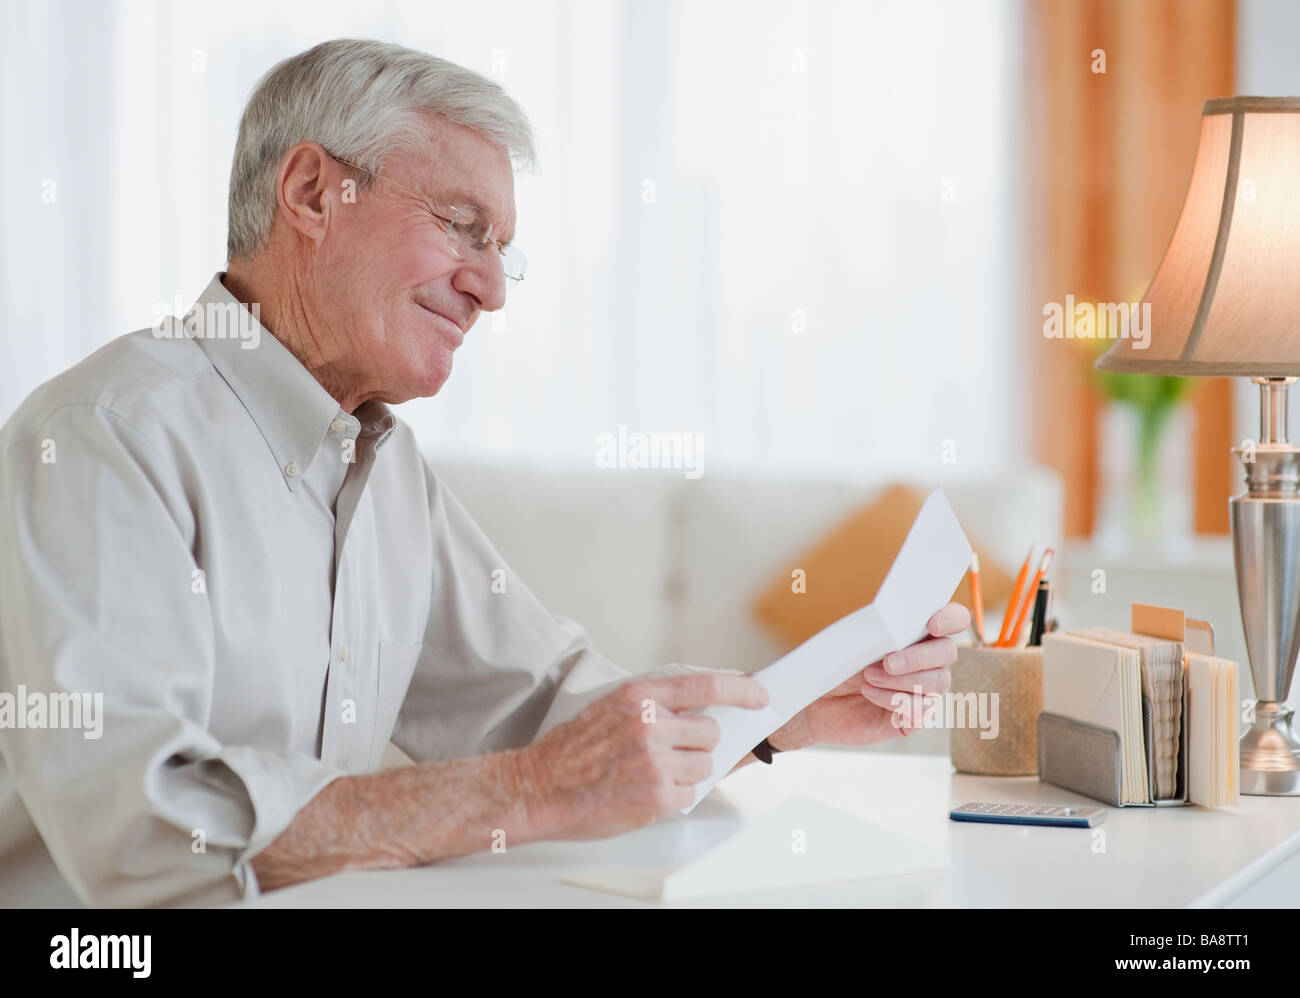 Senior man reading letter - Stock Image